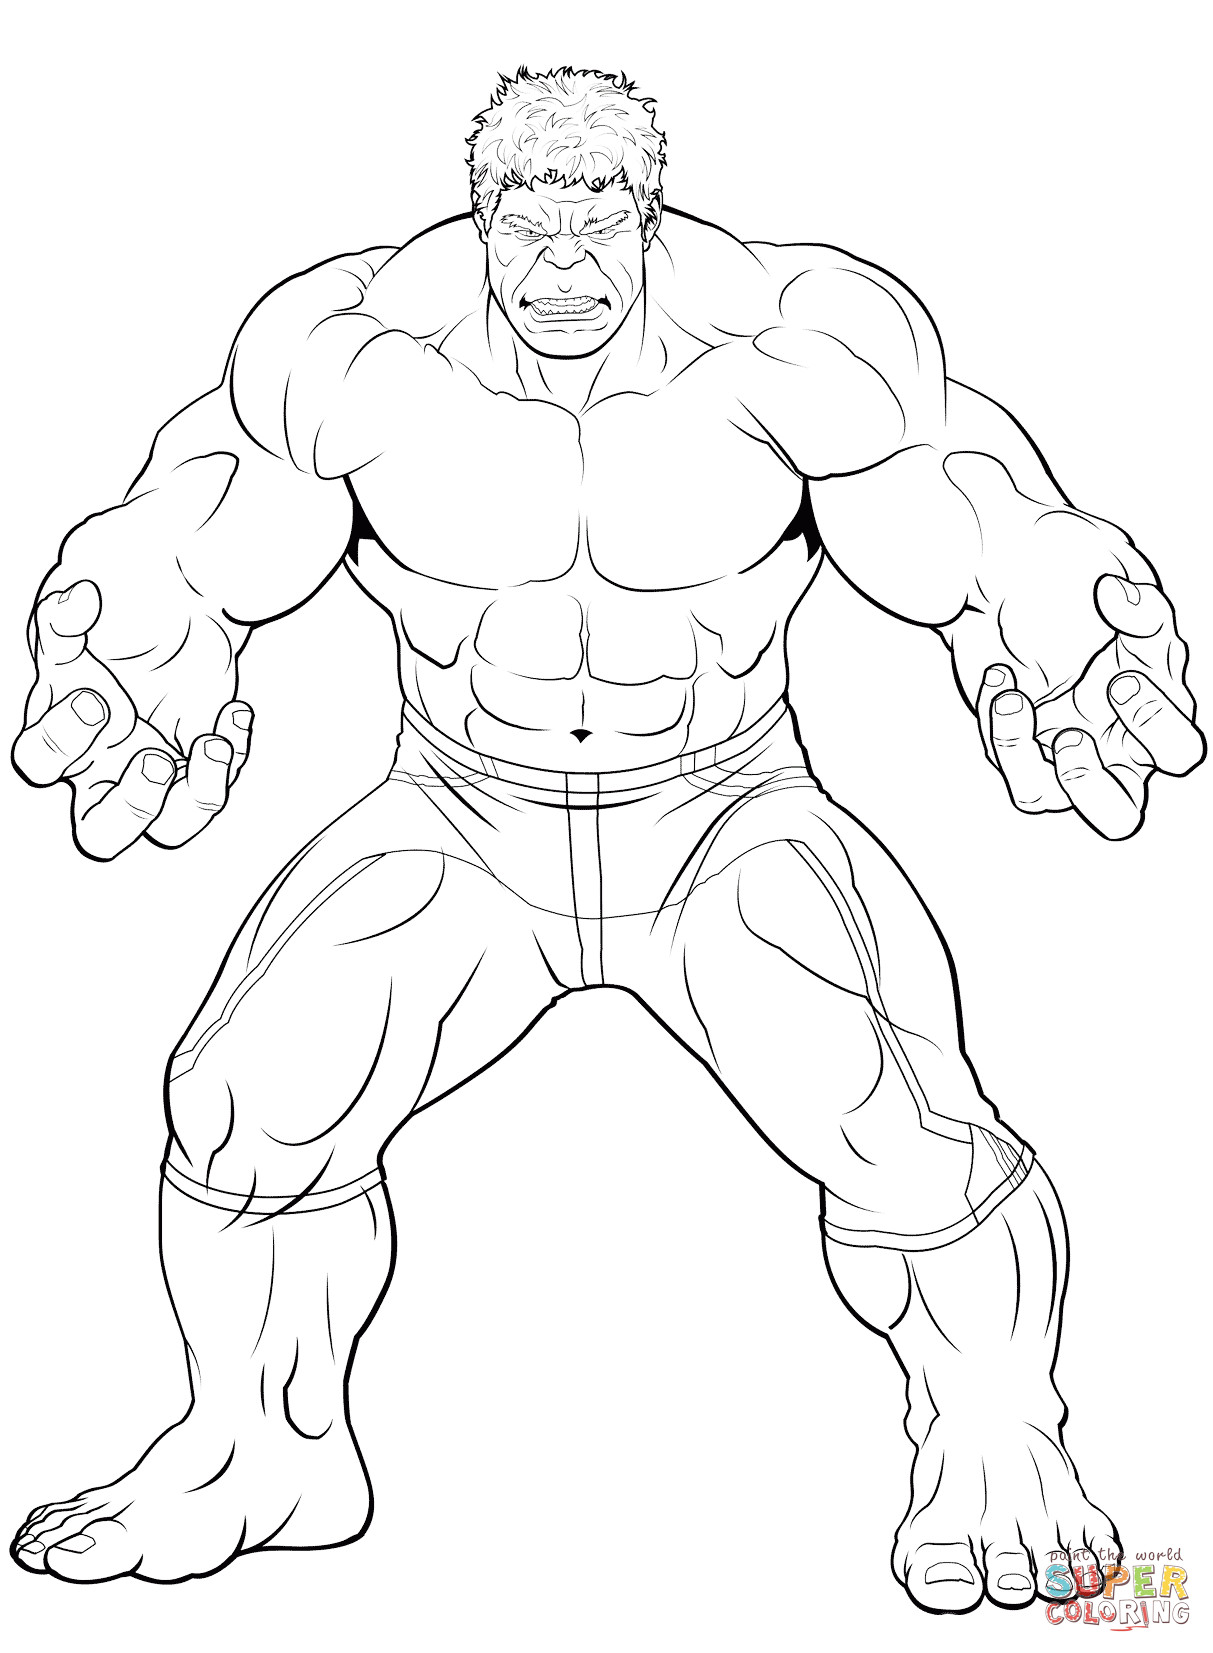 Best ideas about Hulk Coloring Pages For Kids . Save or Pin Avengers The Hulk coloring page Now.